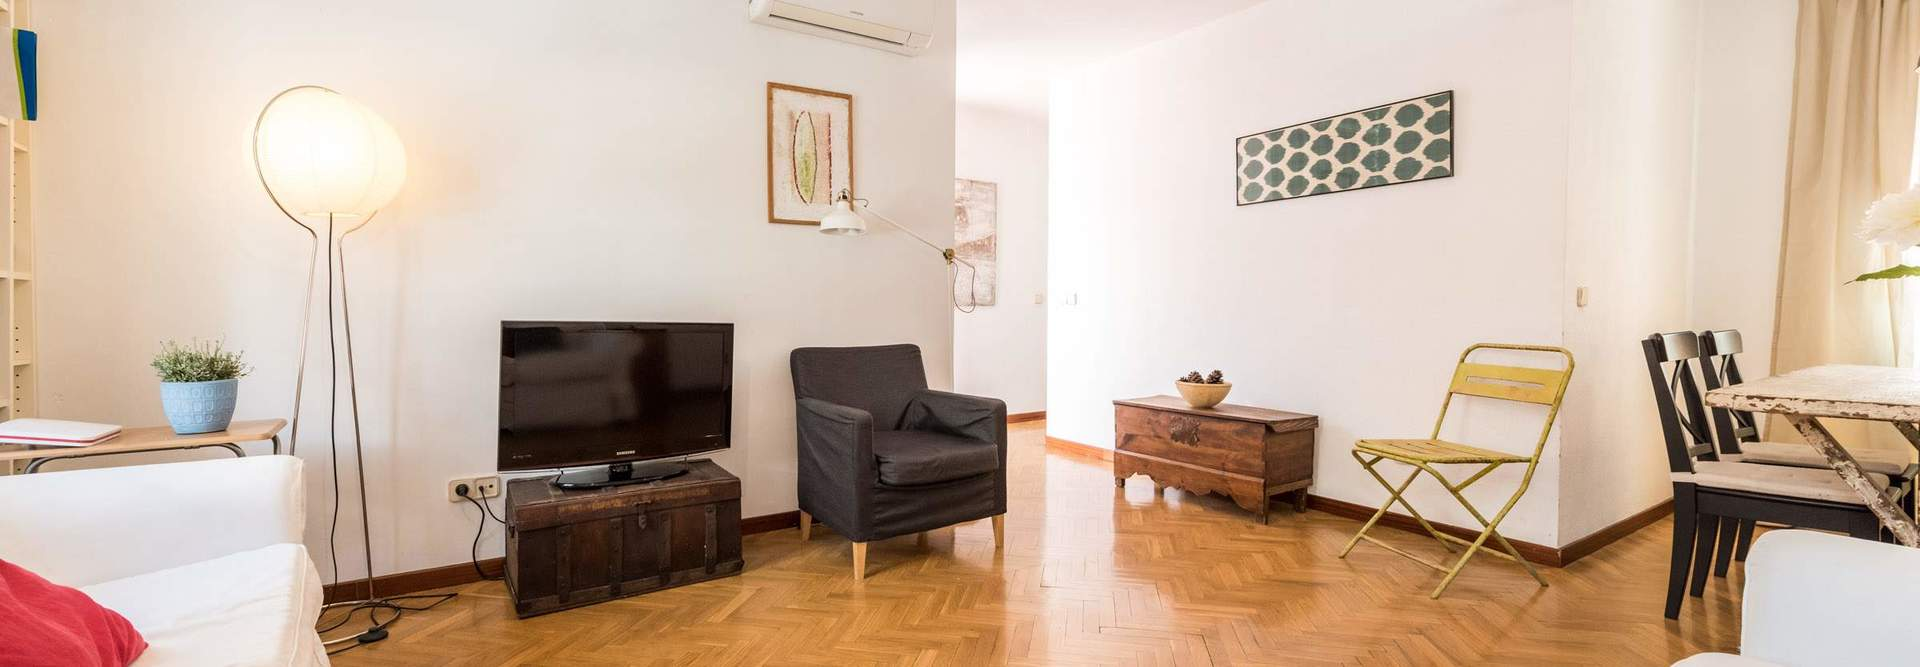 Home alquiler apartamento por d as madrid centro  16